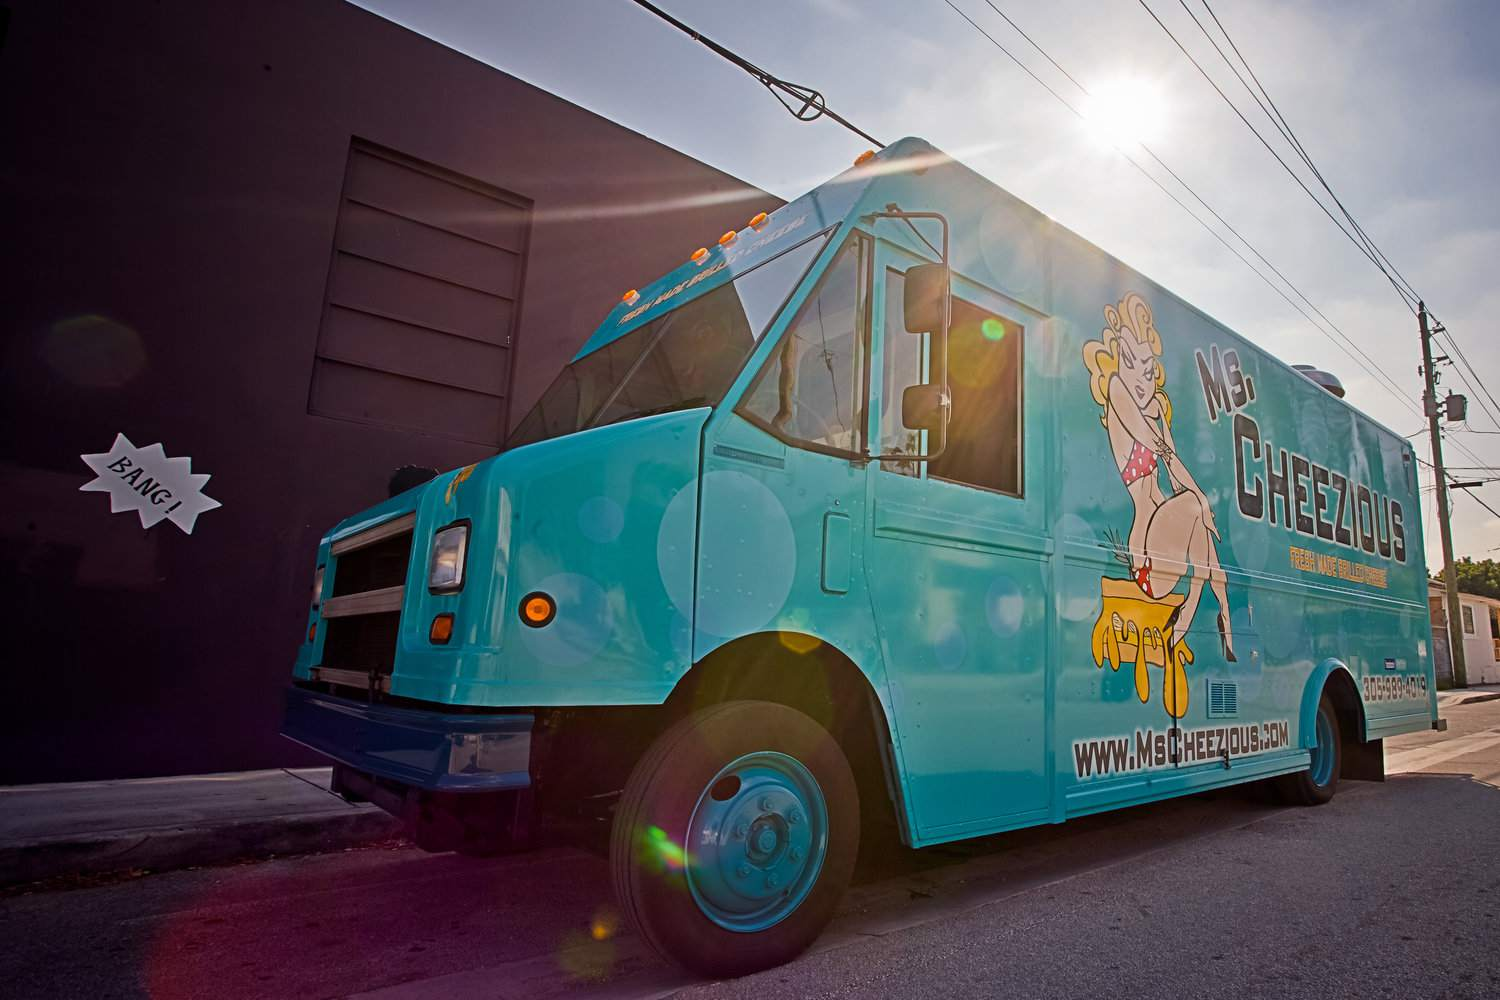 The Ms. Cheezious food truck